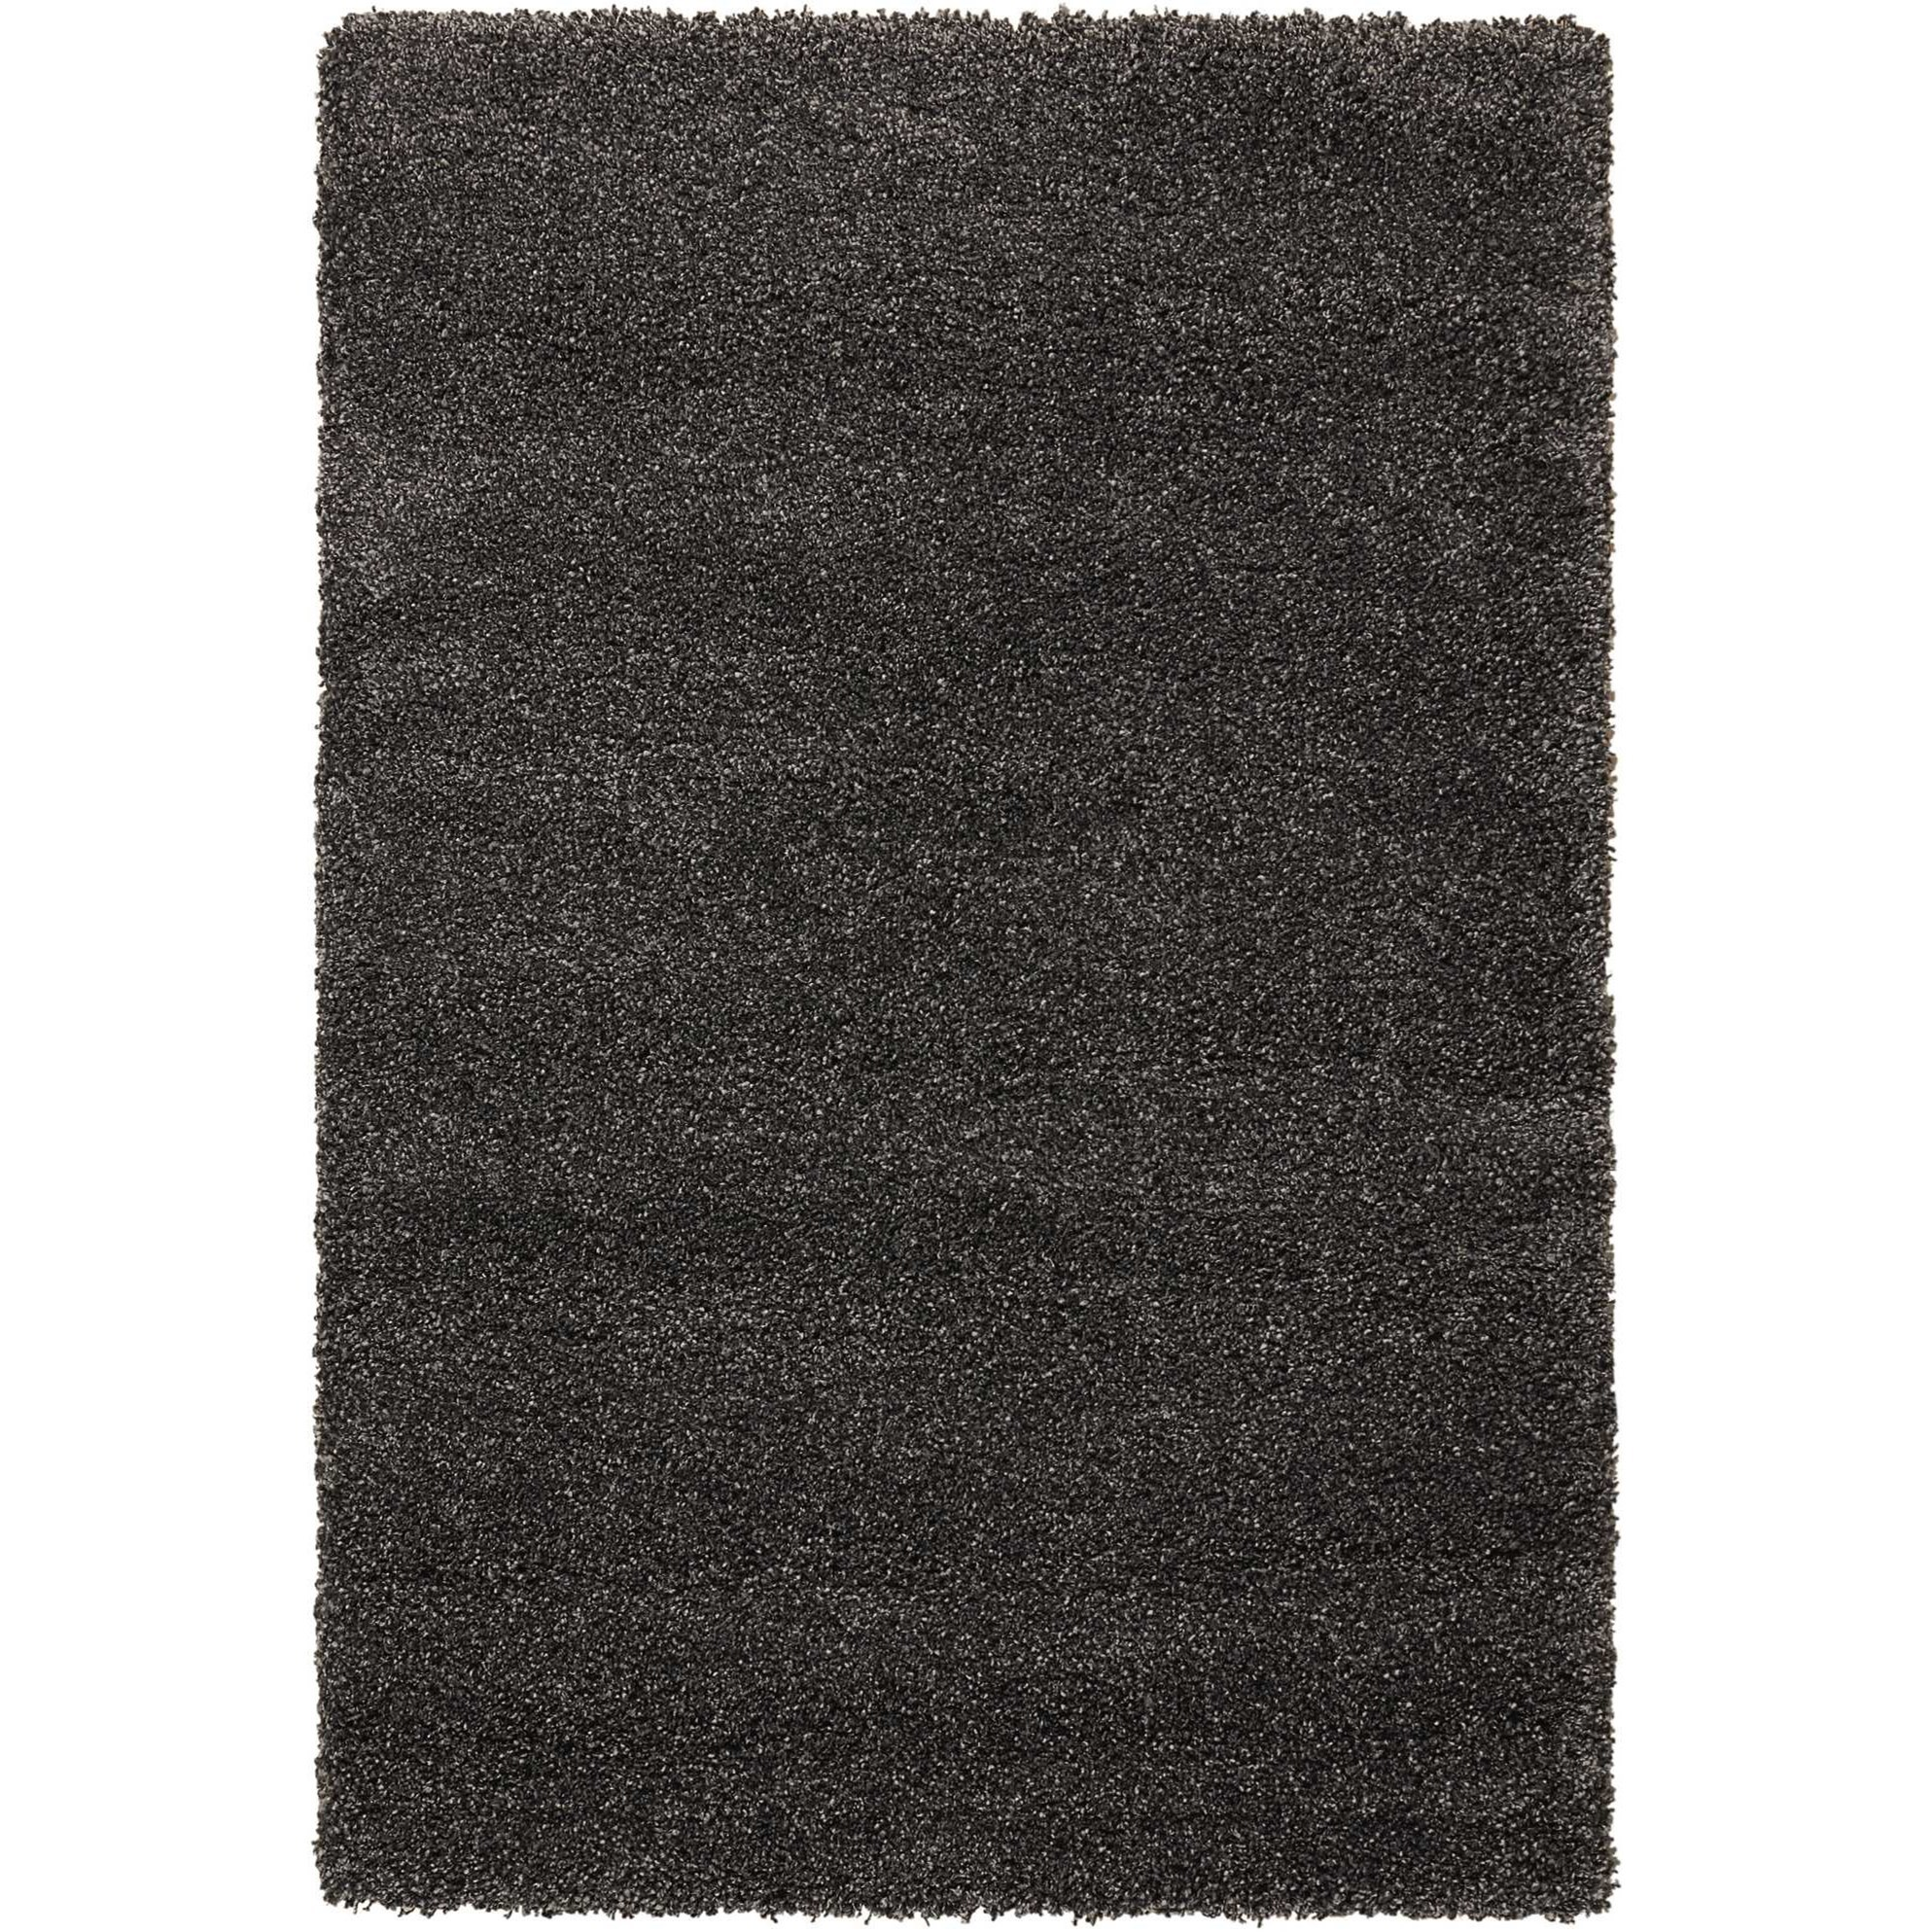 """Amore 3'11"""" x 5'11"""" Dark Grey Rectangle Rug by Nourison at Home Collections Furniture"""